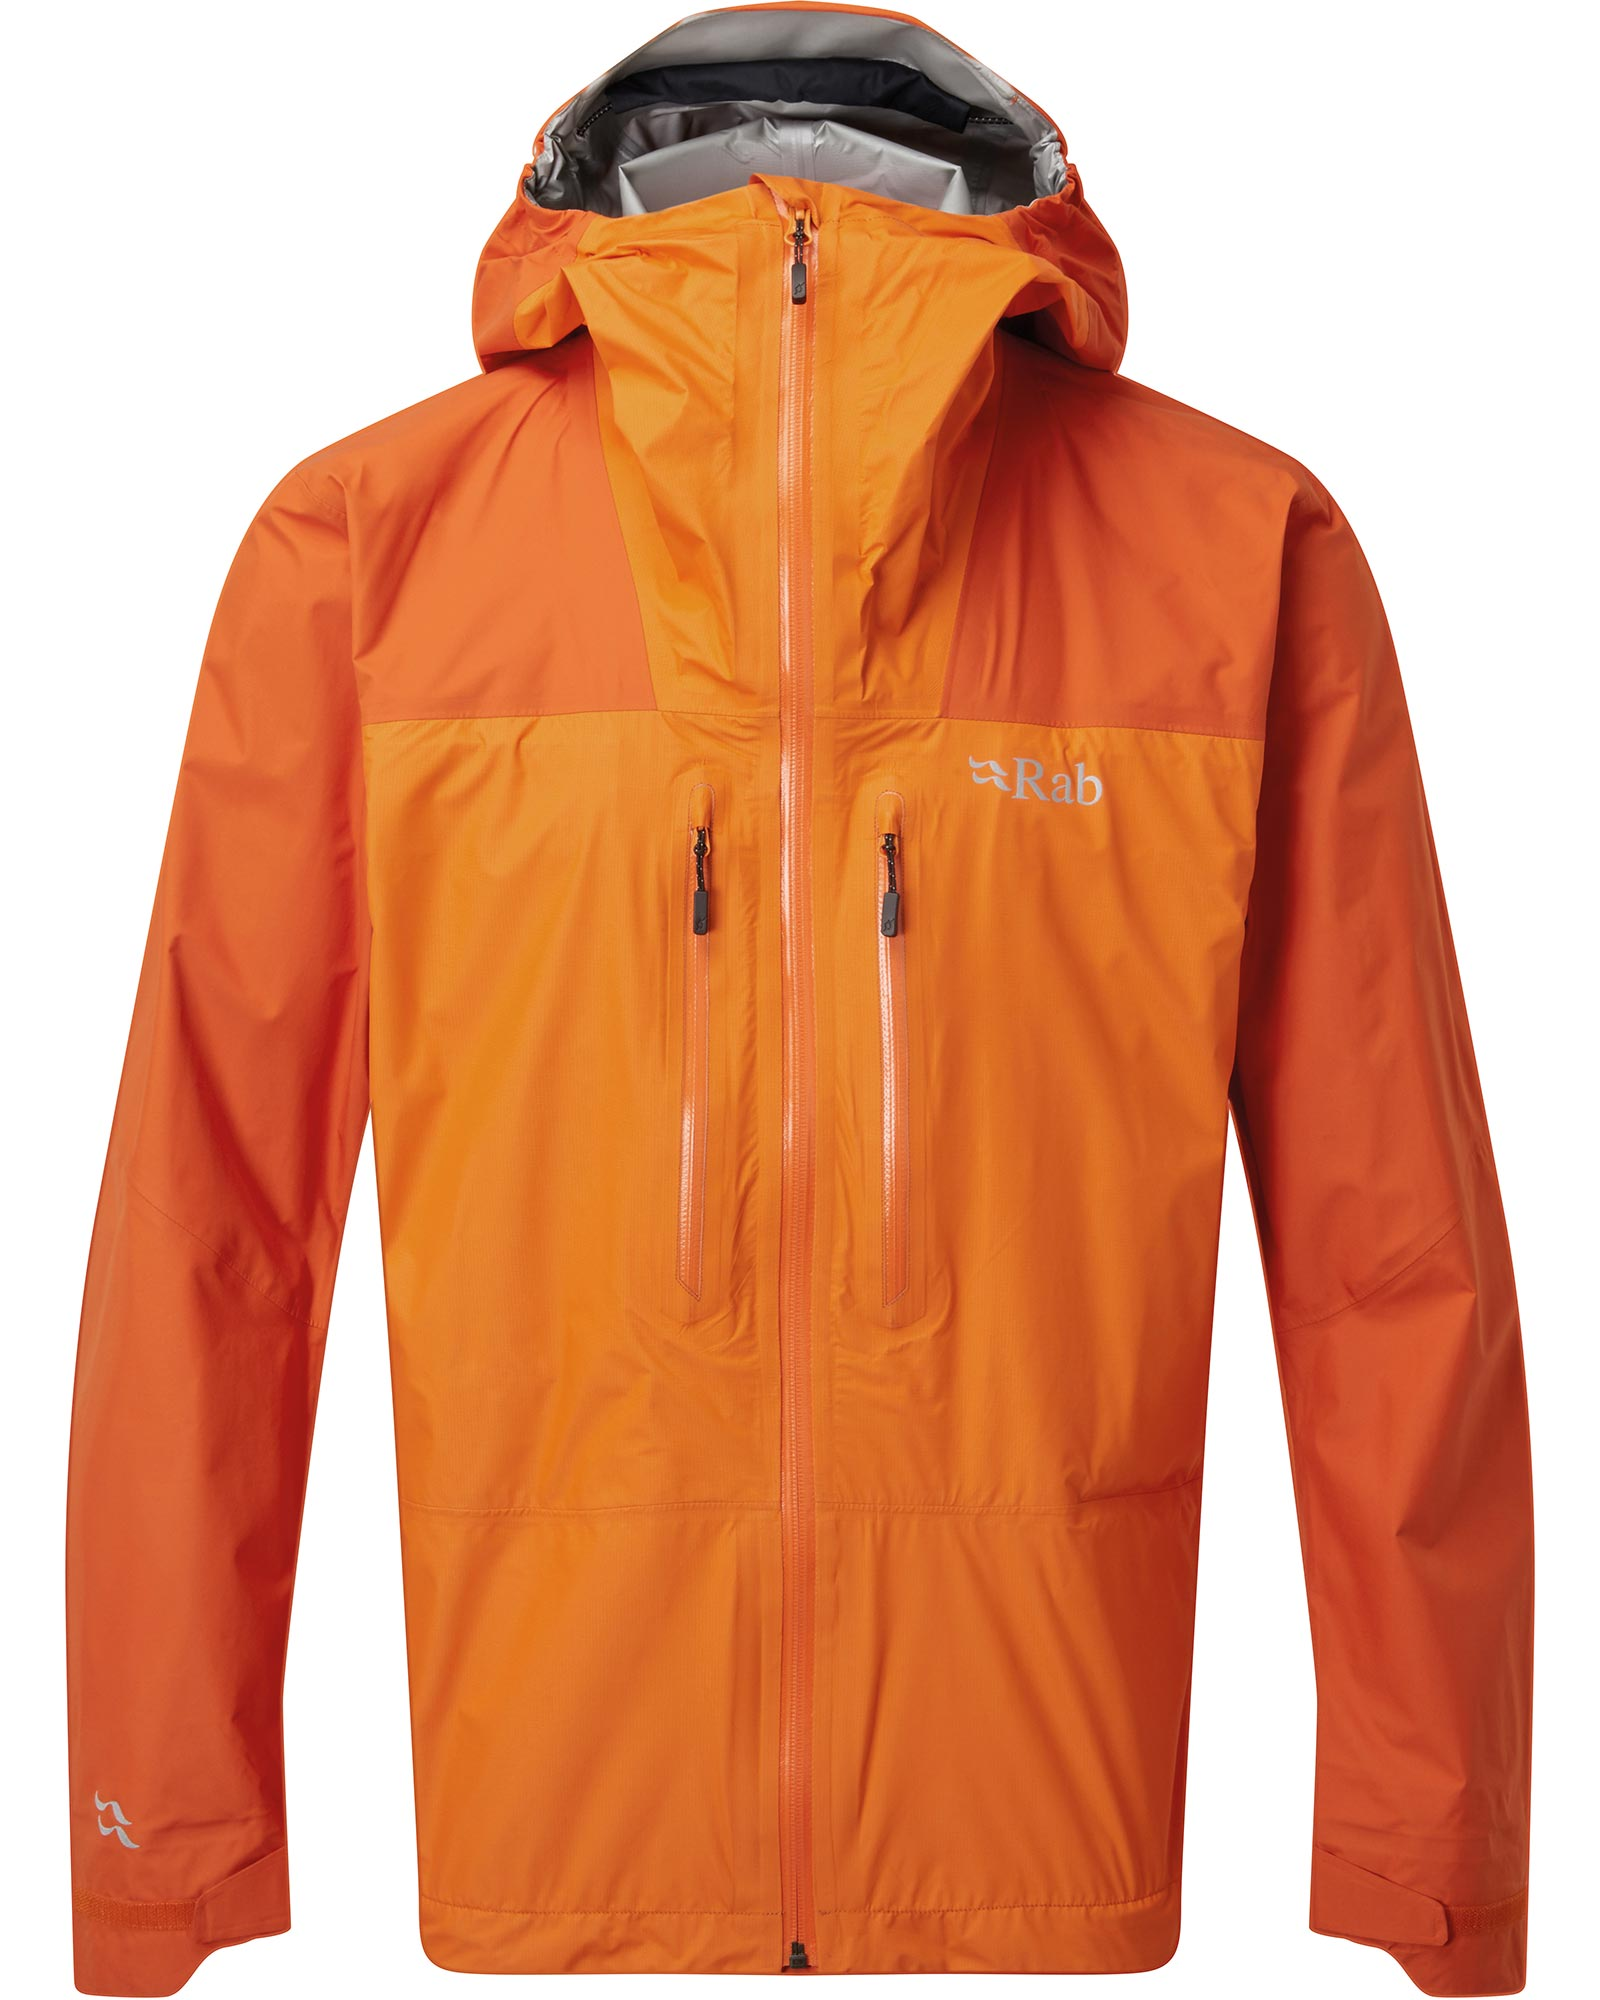 Rab Zenith GORE-TEX PACLITE Plus Men's Jacket 0